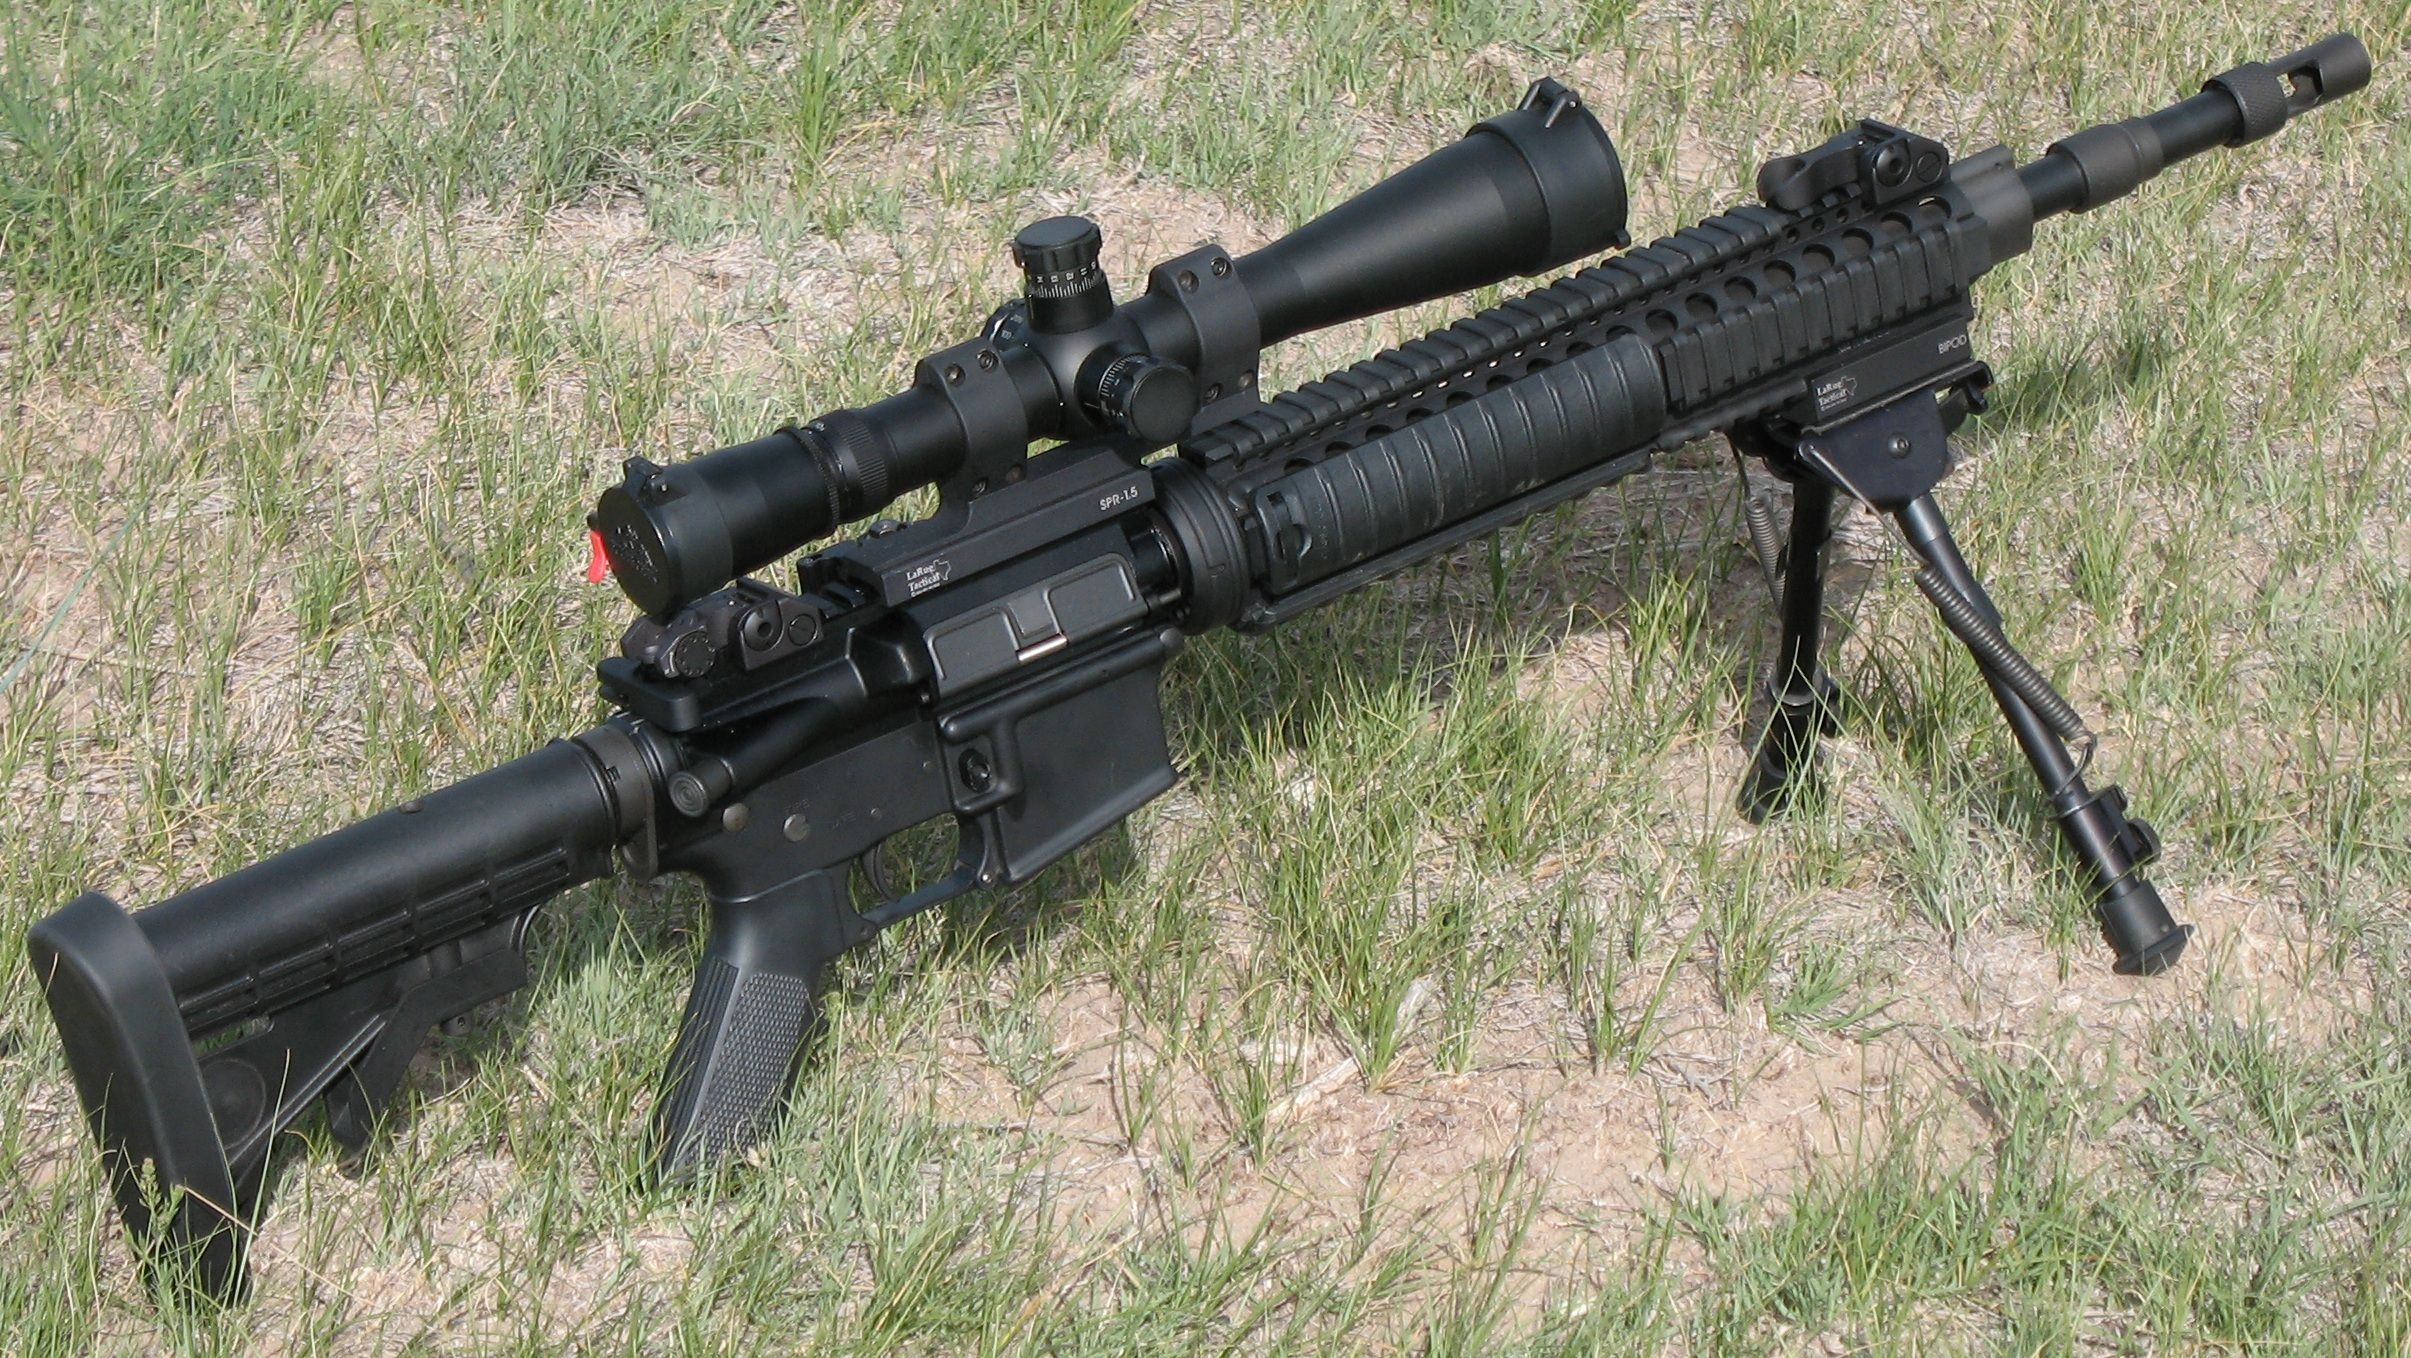 :: My custom built Mk12 MOD 1 Clone